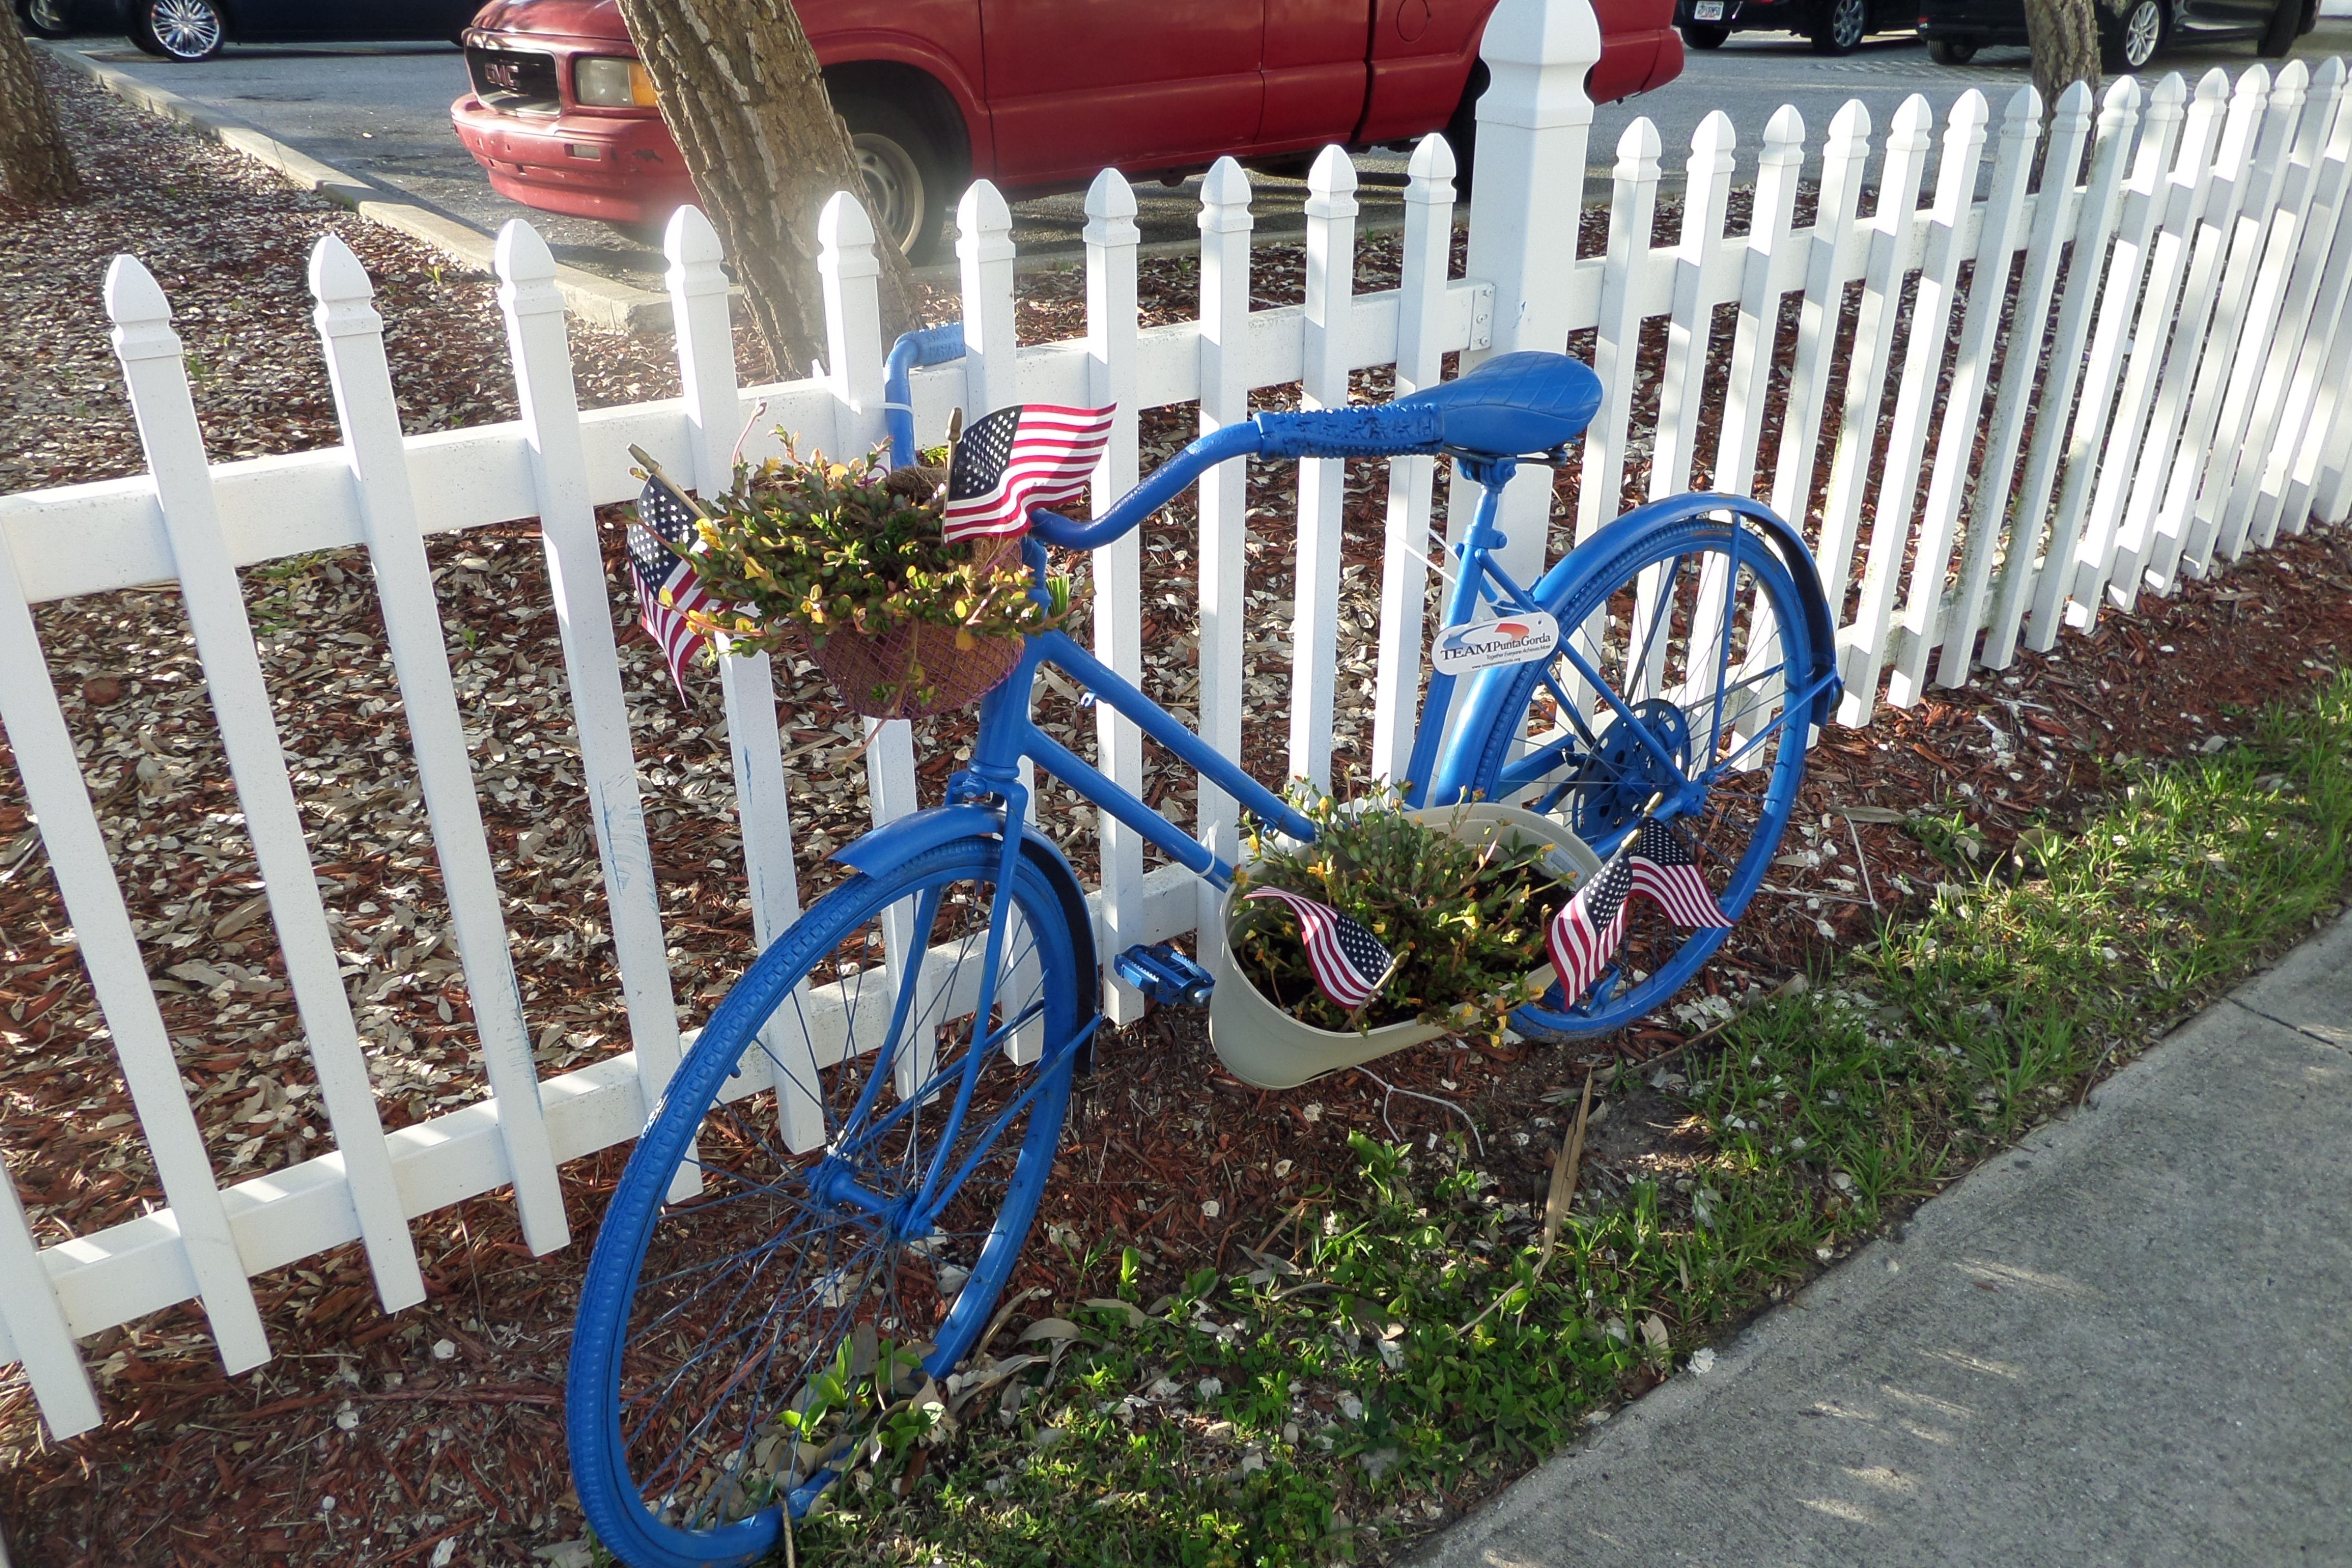 Bikes in paradise art project placed around town punta